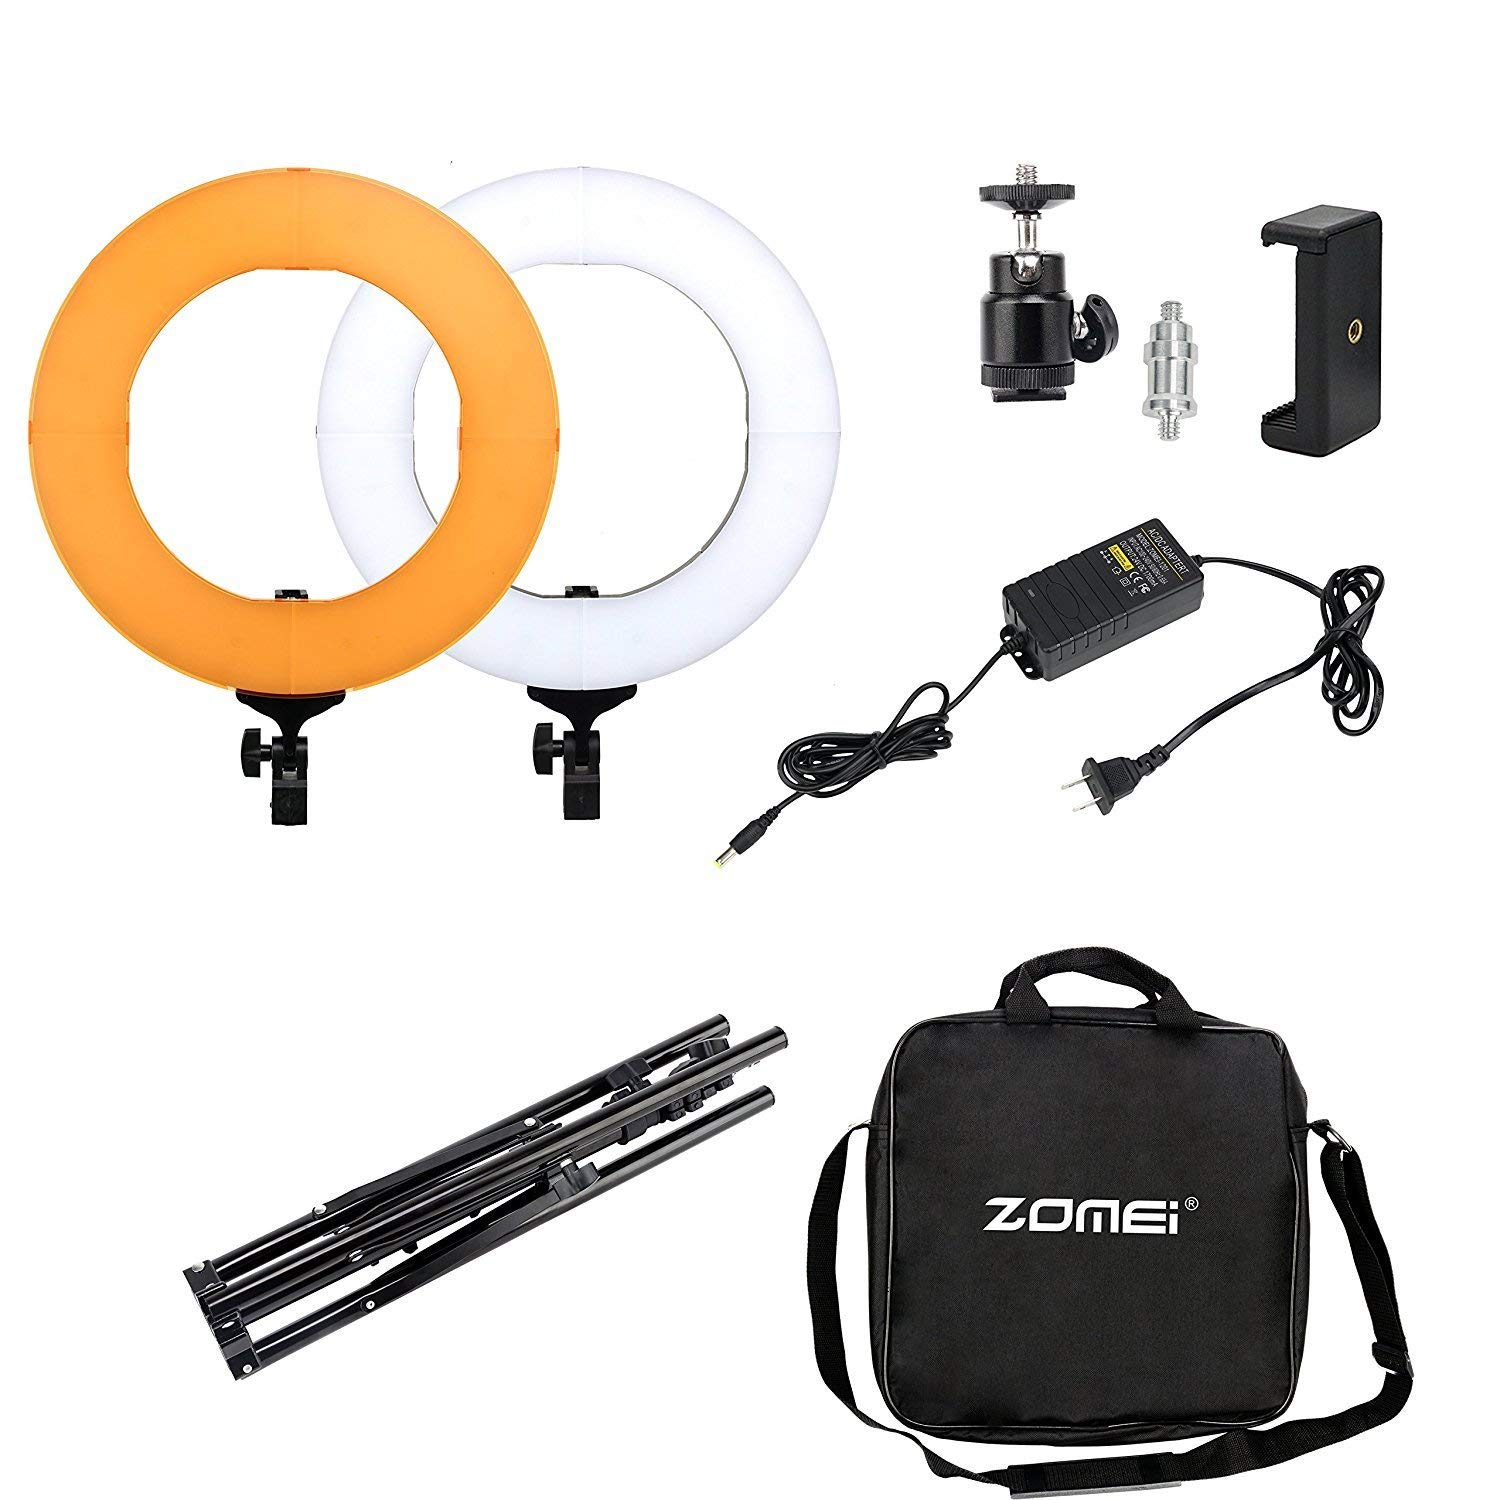 "ZOMEI 14"" Camera Photo/Video LED SMD Ring Light 5500K Dimmable Outer Pieces Ring Light with Plastic Color Filter Set and Light Stand for Photographic Lighting,YouTube Live and Makeup"